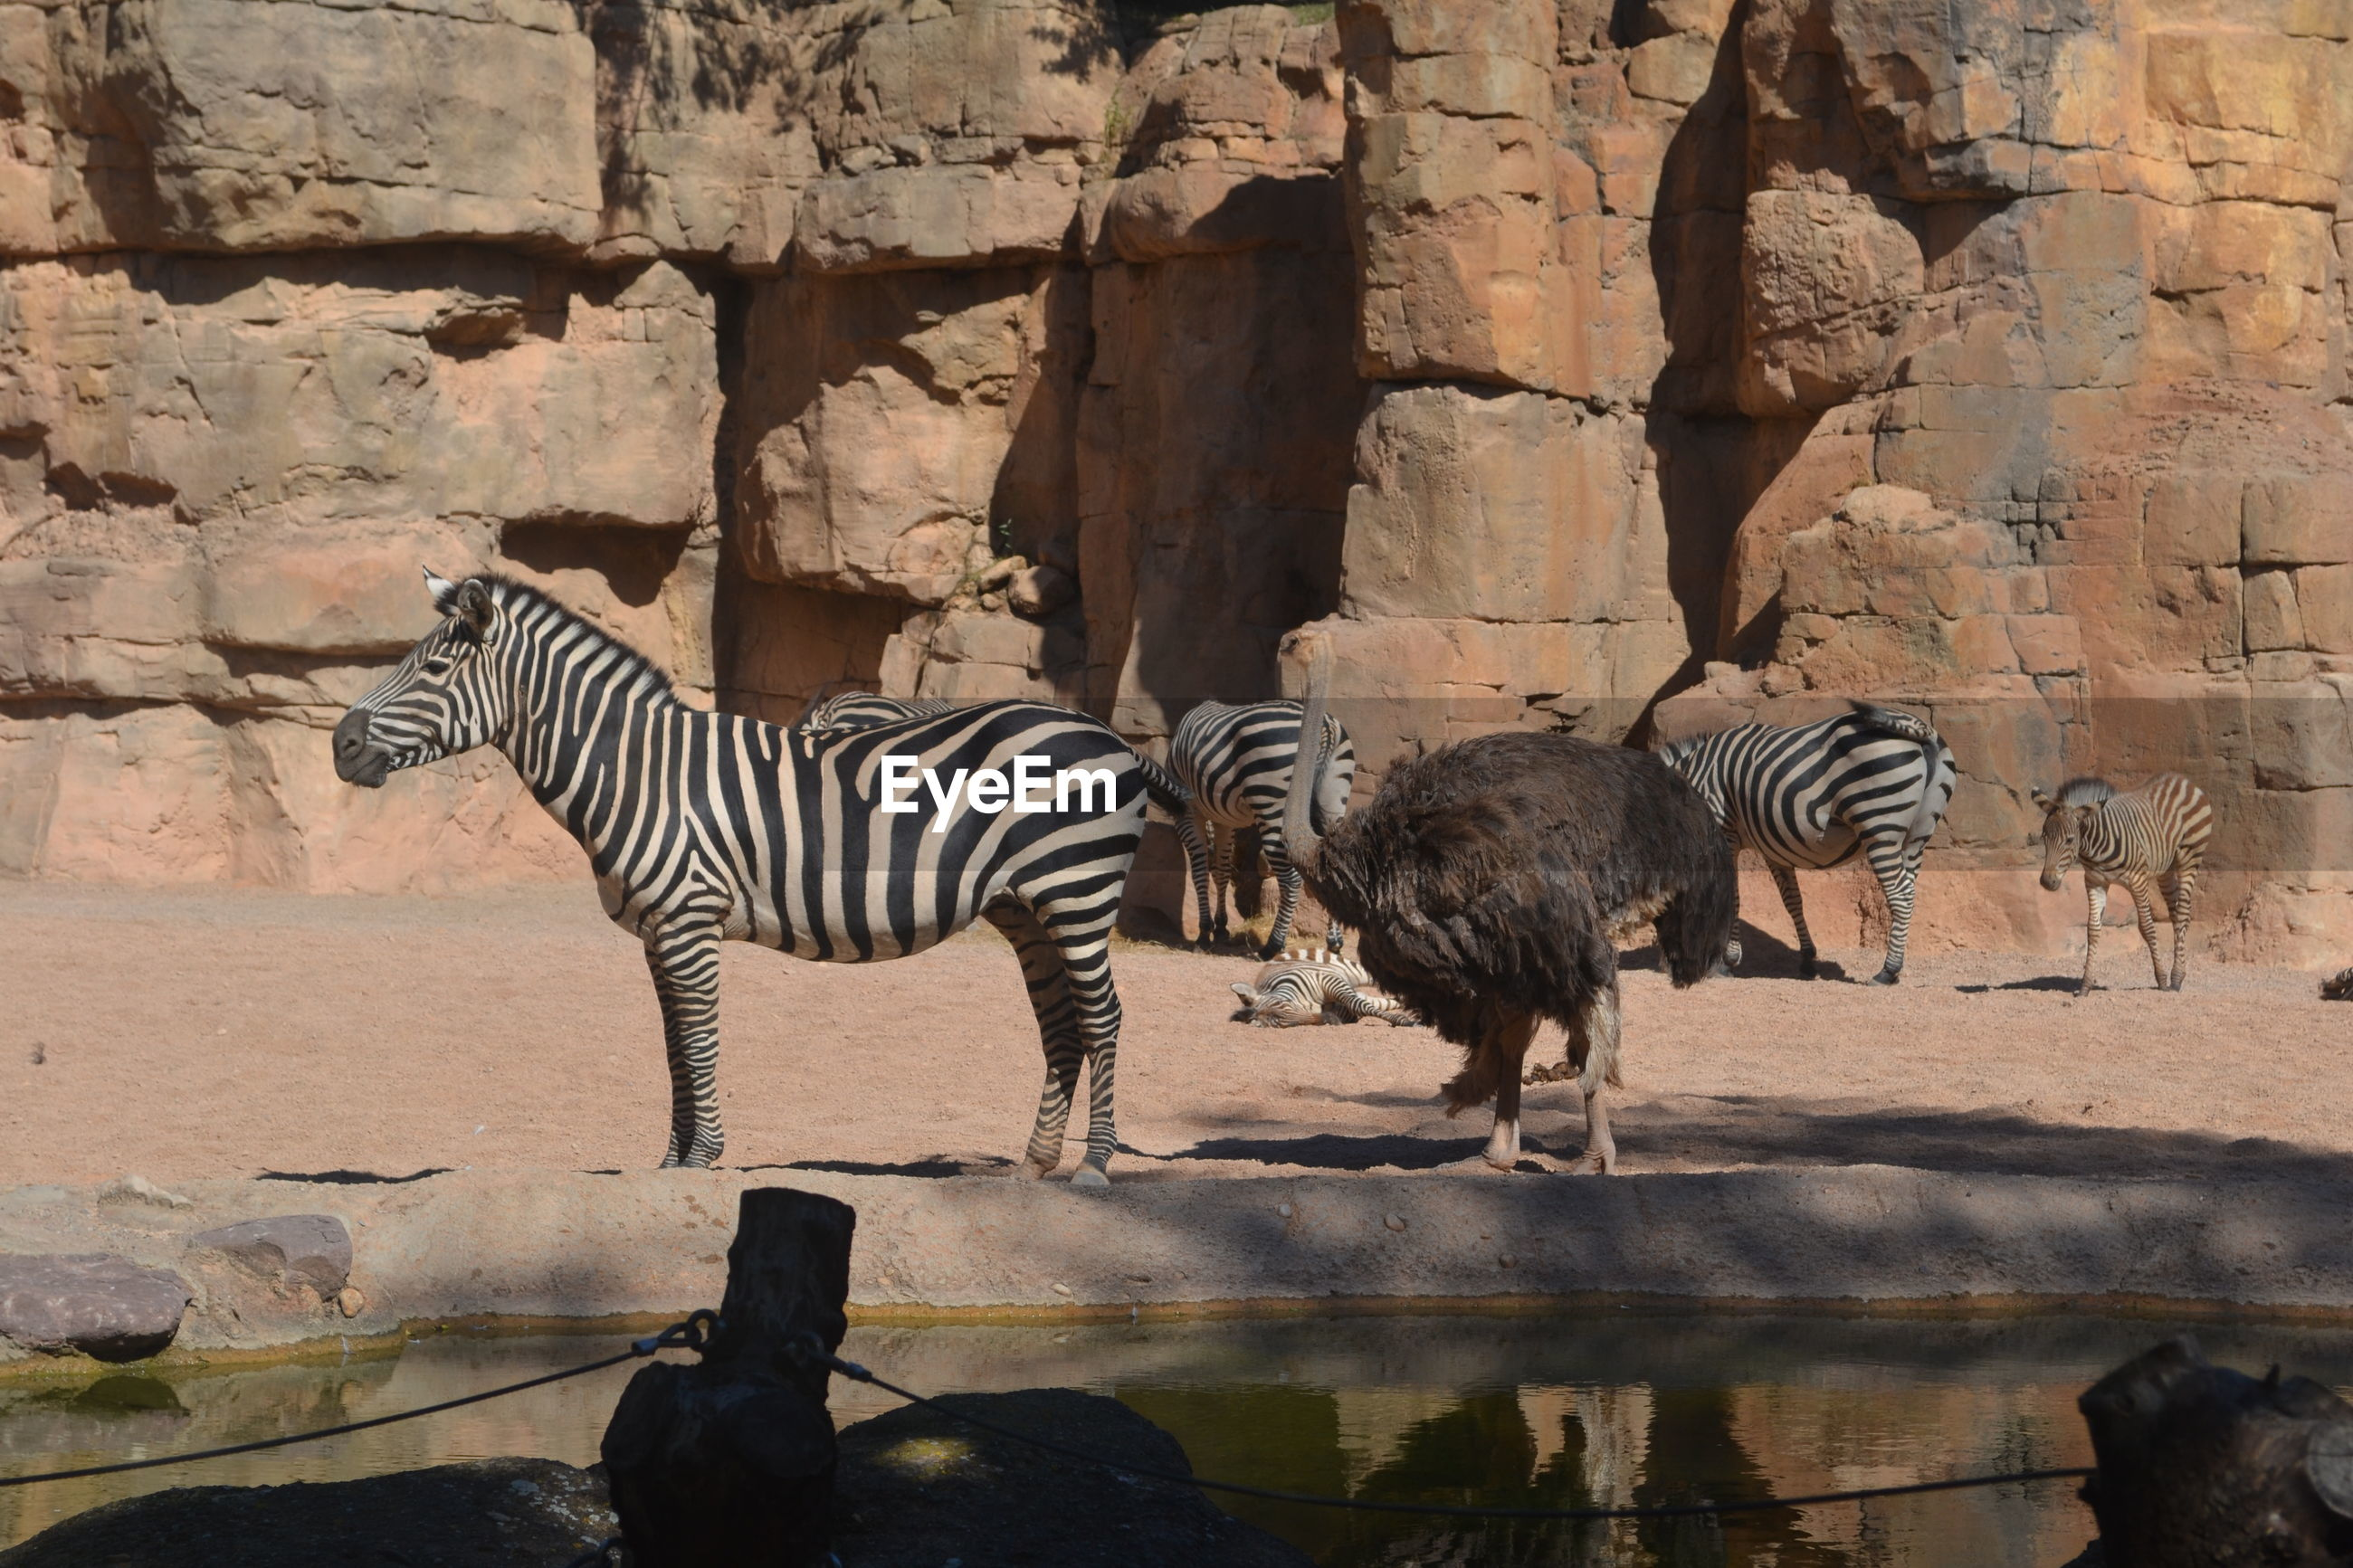 VIEW OF TWO ZEBRAS AND ROCK